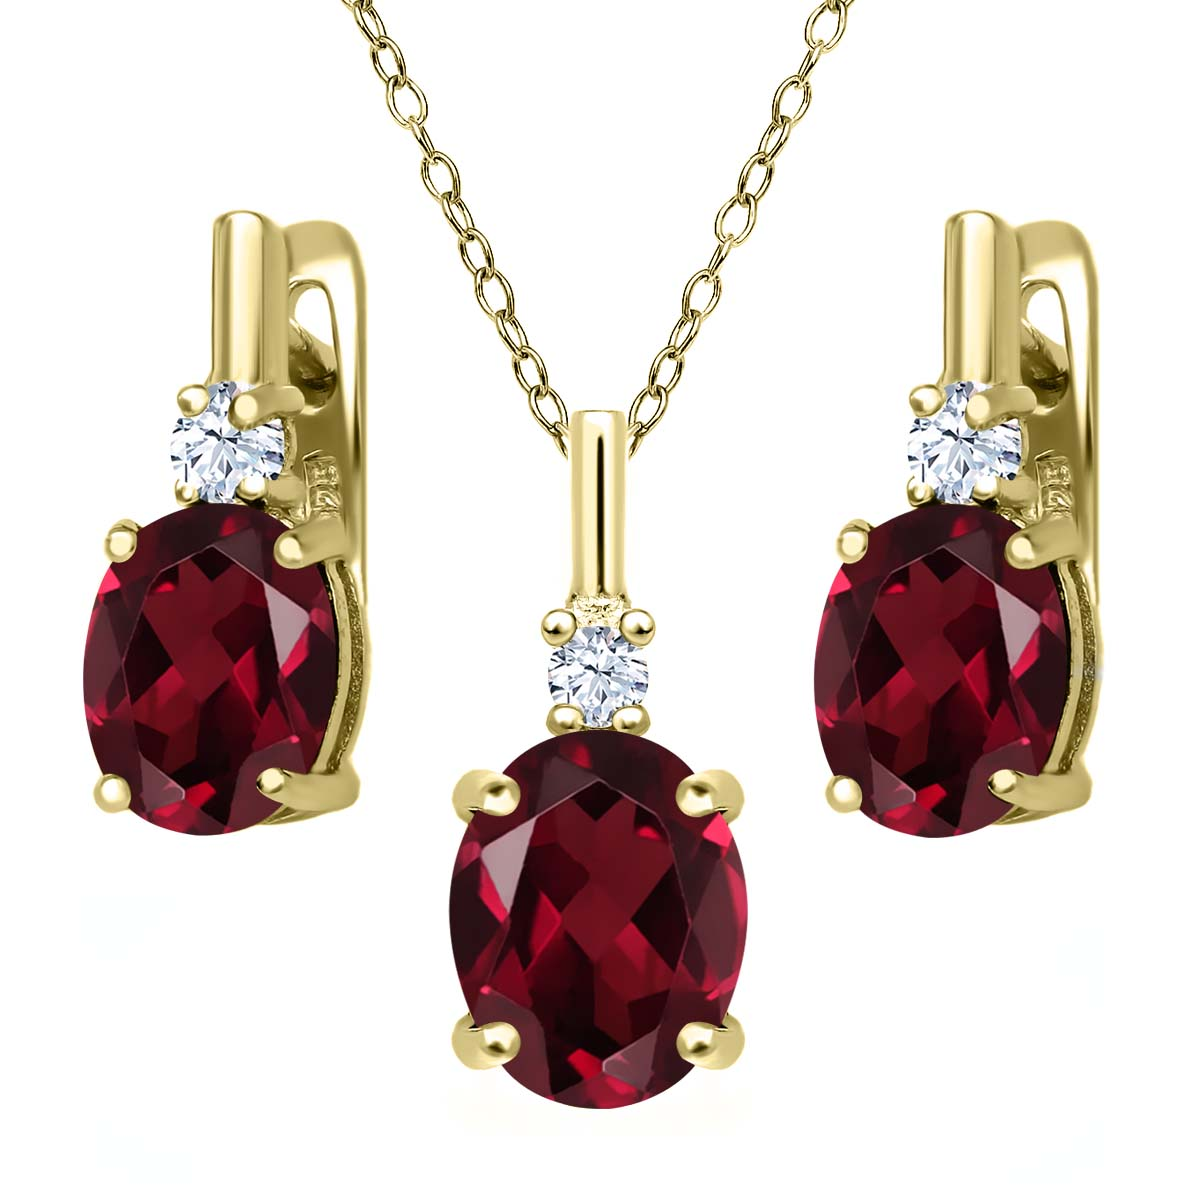 6.68 Ct Red Rhodolite Garnet White Topaz 18K Yellow Gold Plated Silver Pendant Earrings Set by